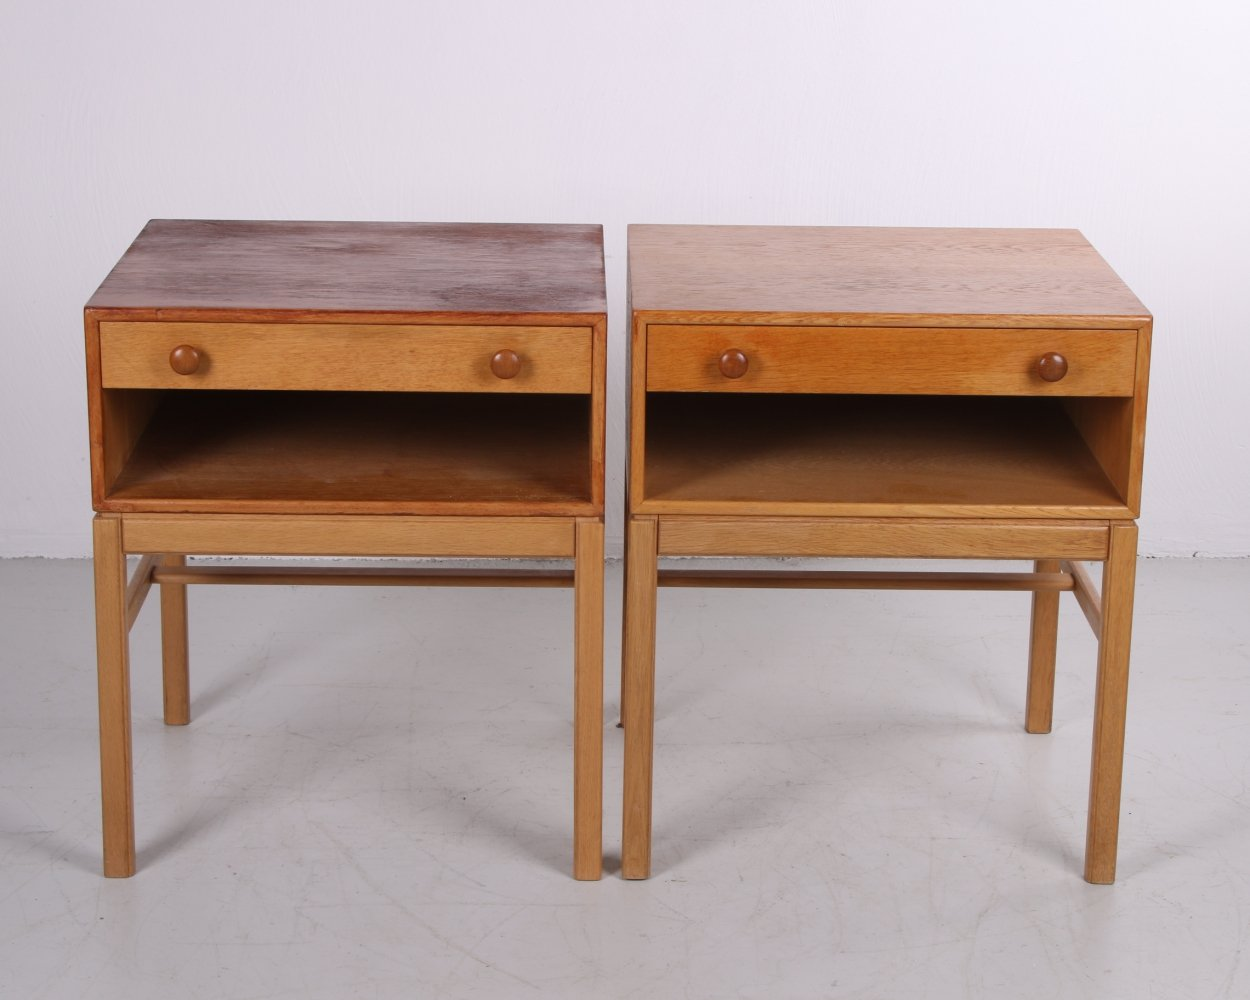 Pair of Swedish design bedside tables with drawer & wooden handles, 1960s